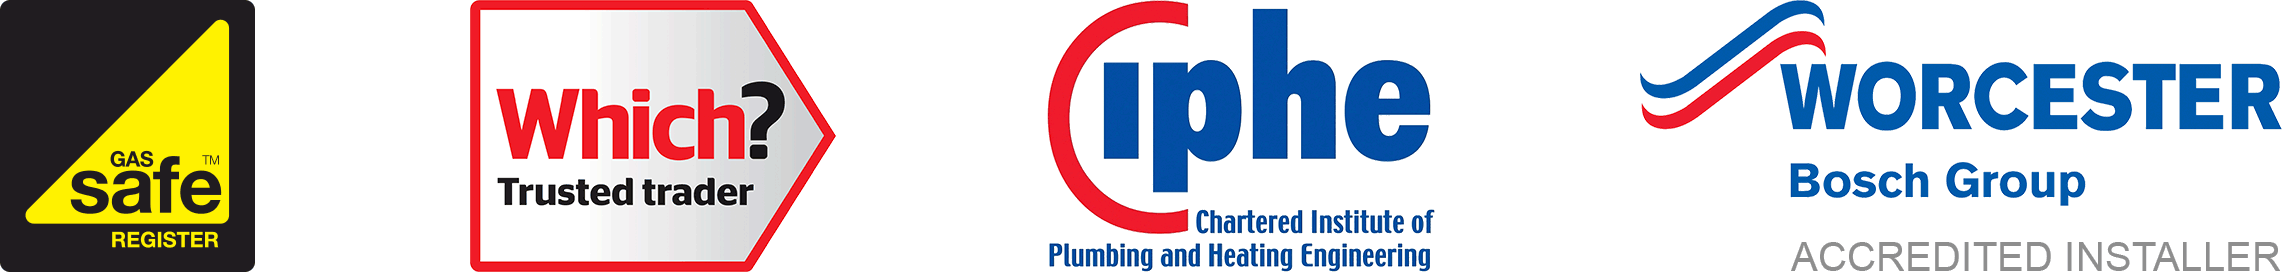 We're accredited by Which?, Gas Safe Register, CIPHE and Worcester Bosch